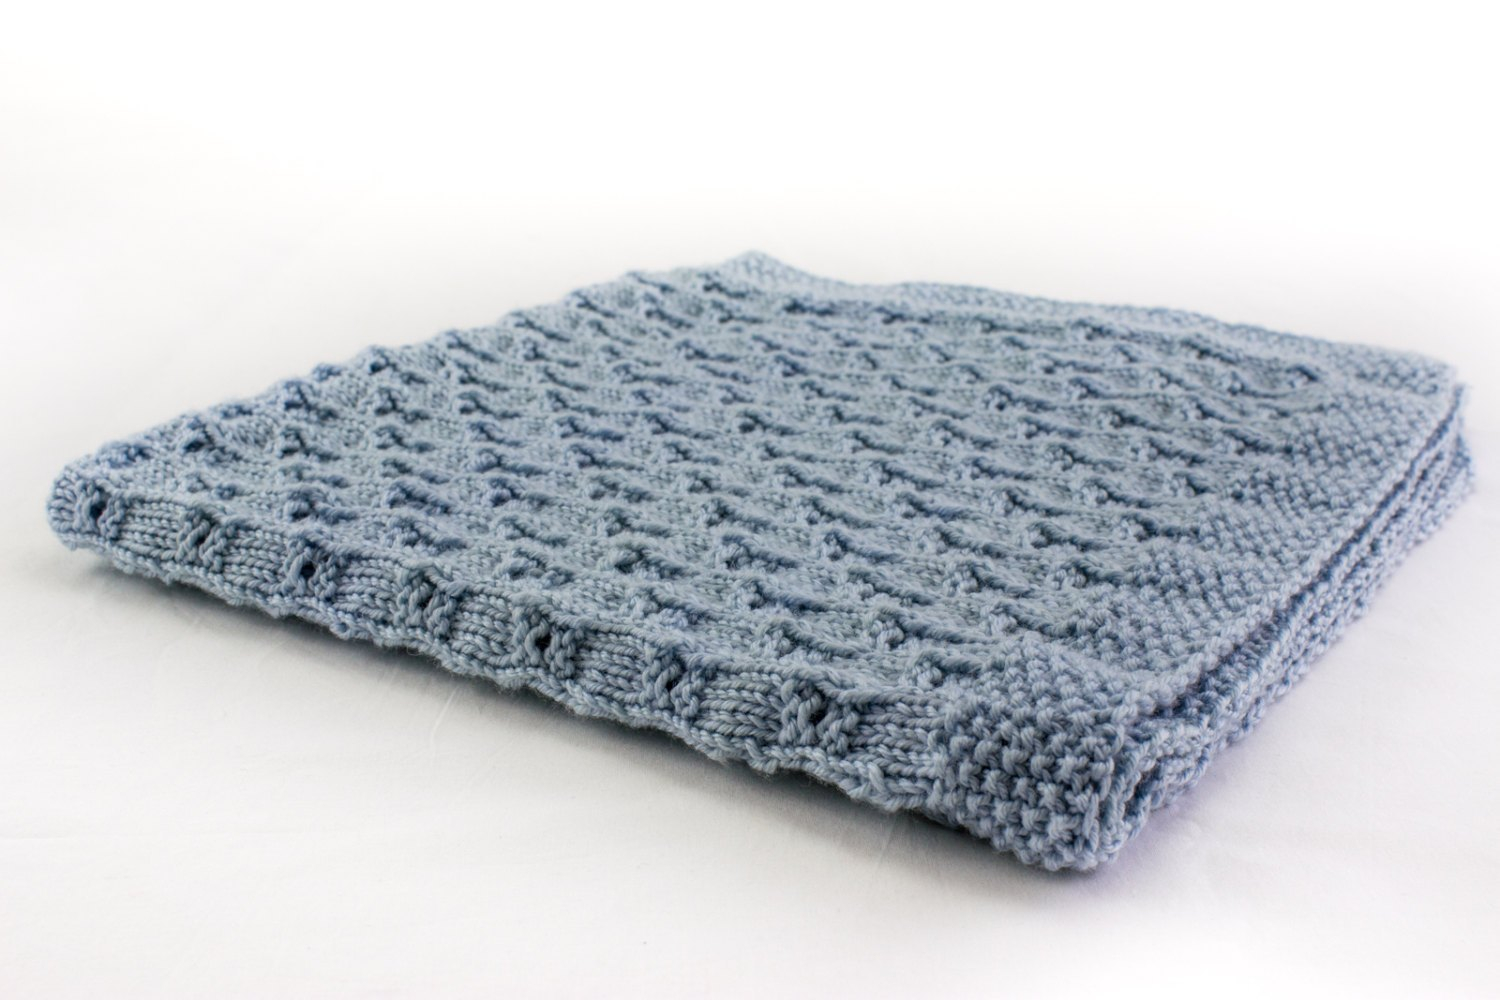 Free Baby Knitting Patterns 8 Ply 8 Ply Ba Blanket Knitting Patterns Free Crochet And Knit Easy